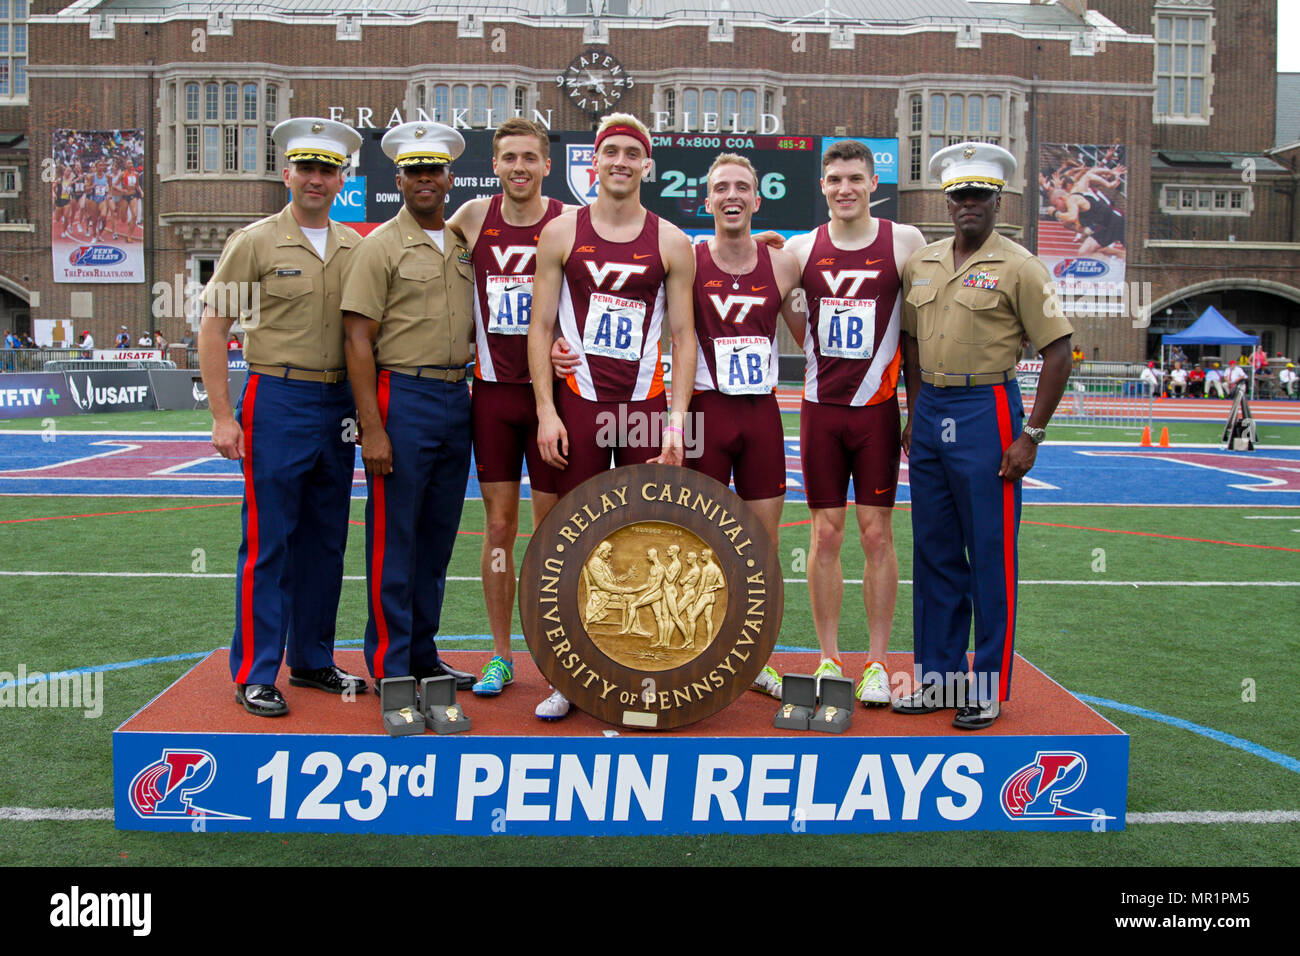 U.S. Marines present awards to the winners of the college men's 4x800 Champions of America Invitational during the 2017 Penn Relays in Philadelphia, April 29. This is the first time in the Penn Relay's 123-year history that Virginia Tech placed first in this event. (U.S. Marine Corps photo by Sgt. Brandon Thomas) - Stock Image